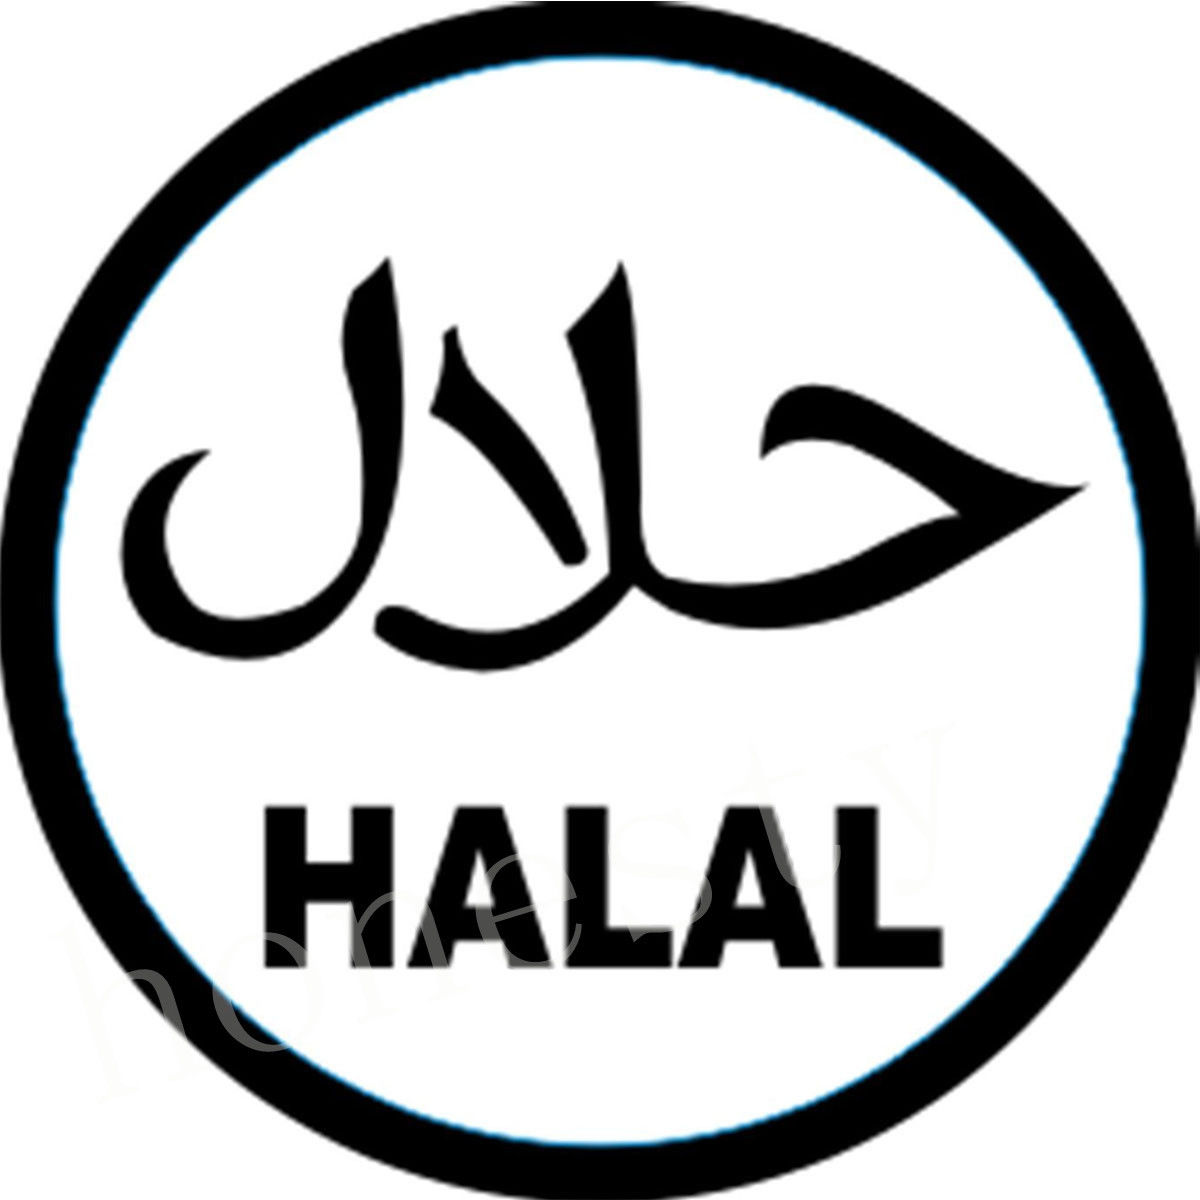 halal shop vinyl sticker decal takeaway cafe sign uk cafe. Black Bedroom Furniture Sets. Home Design Ideas